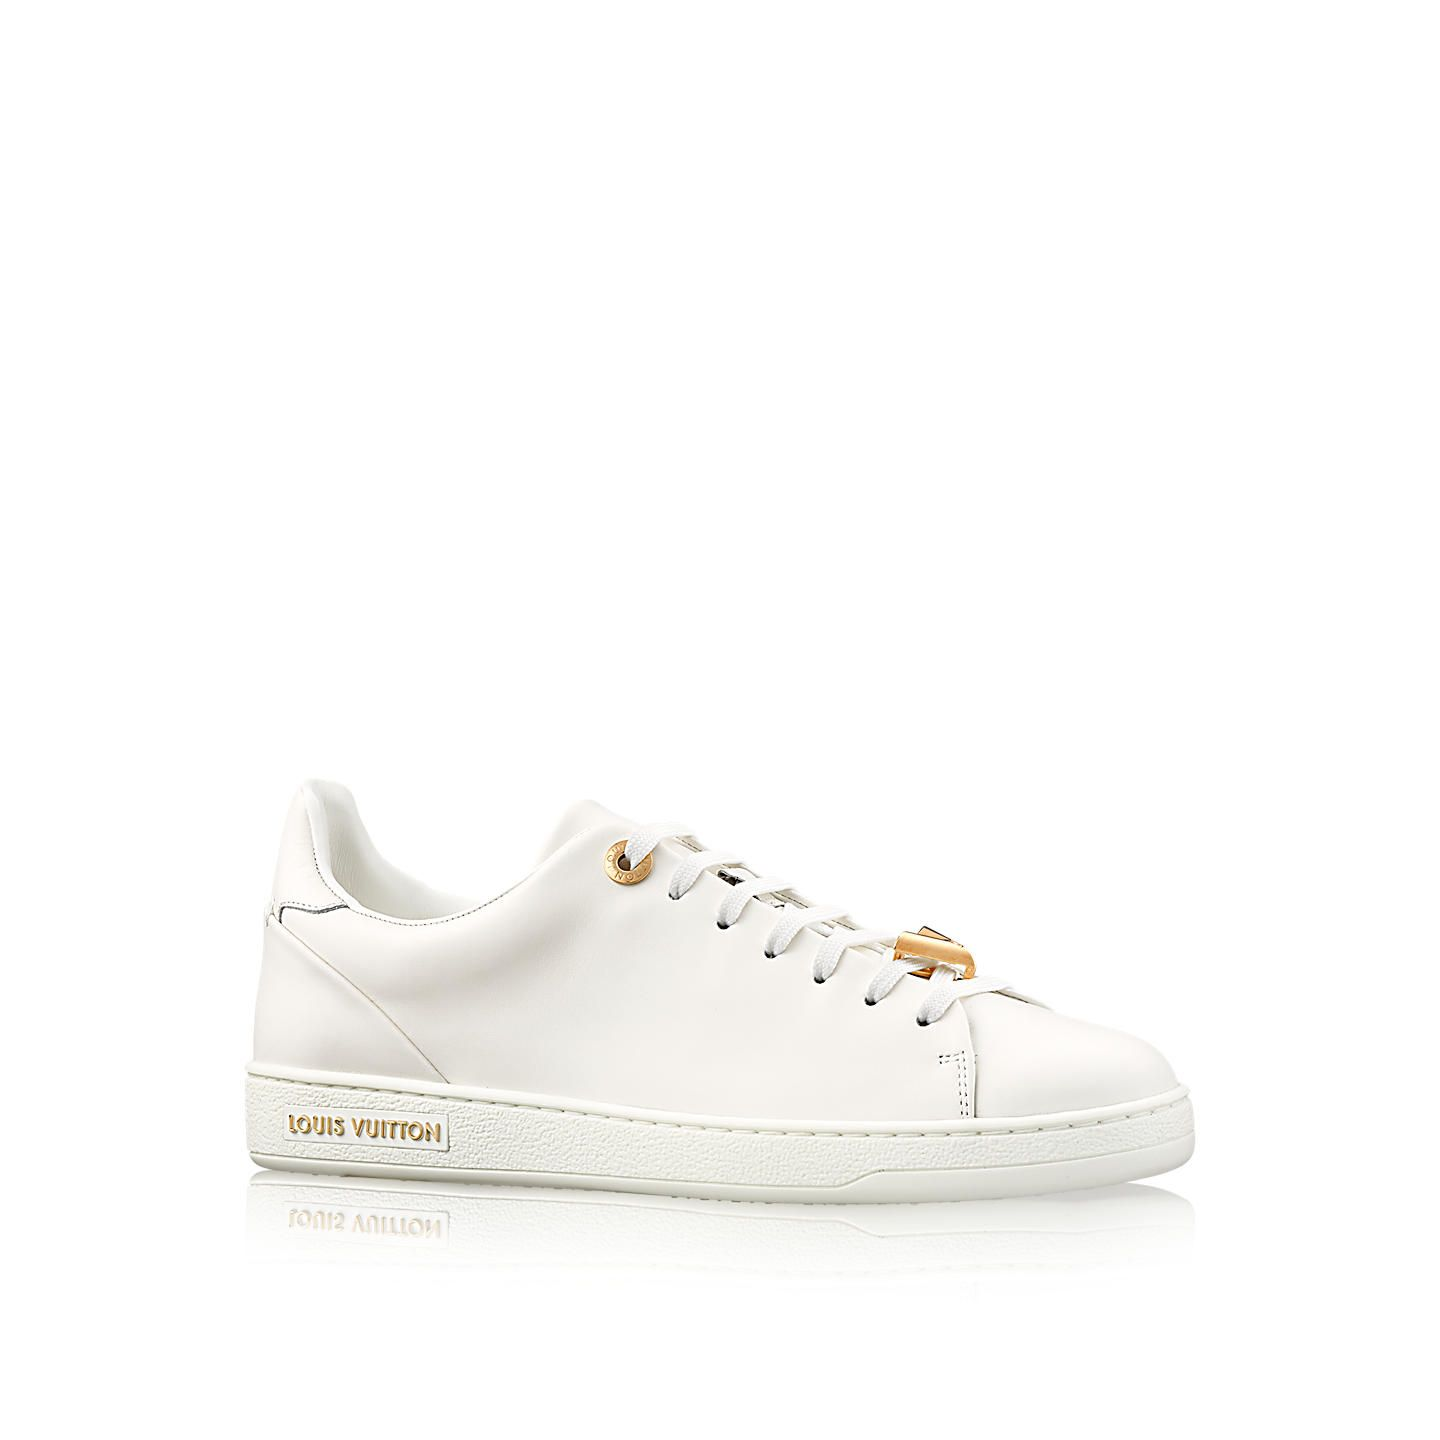 7988c753785f Frontrow Sneaker Women Shoes | LOUIS VUITTON | Shoes | Louis vuitton ...